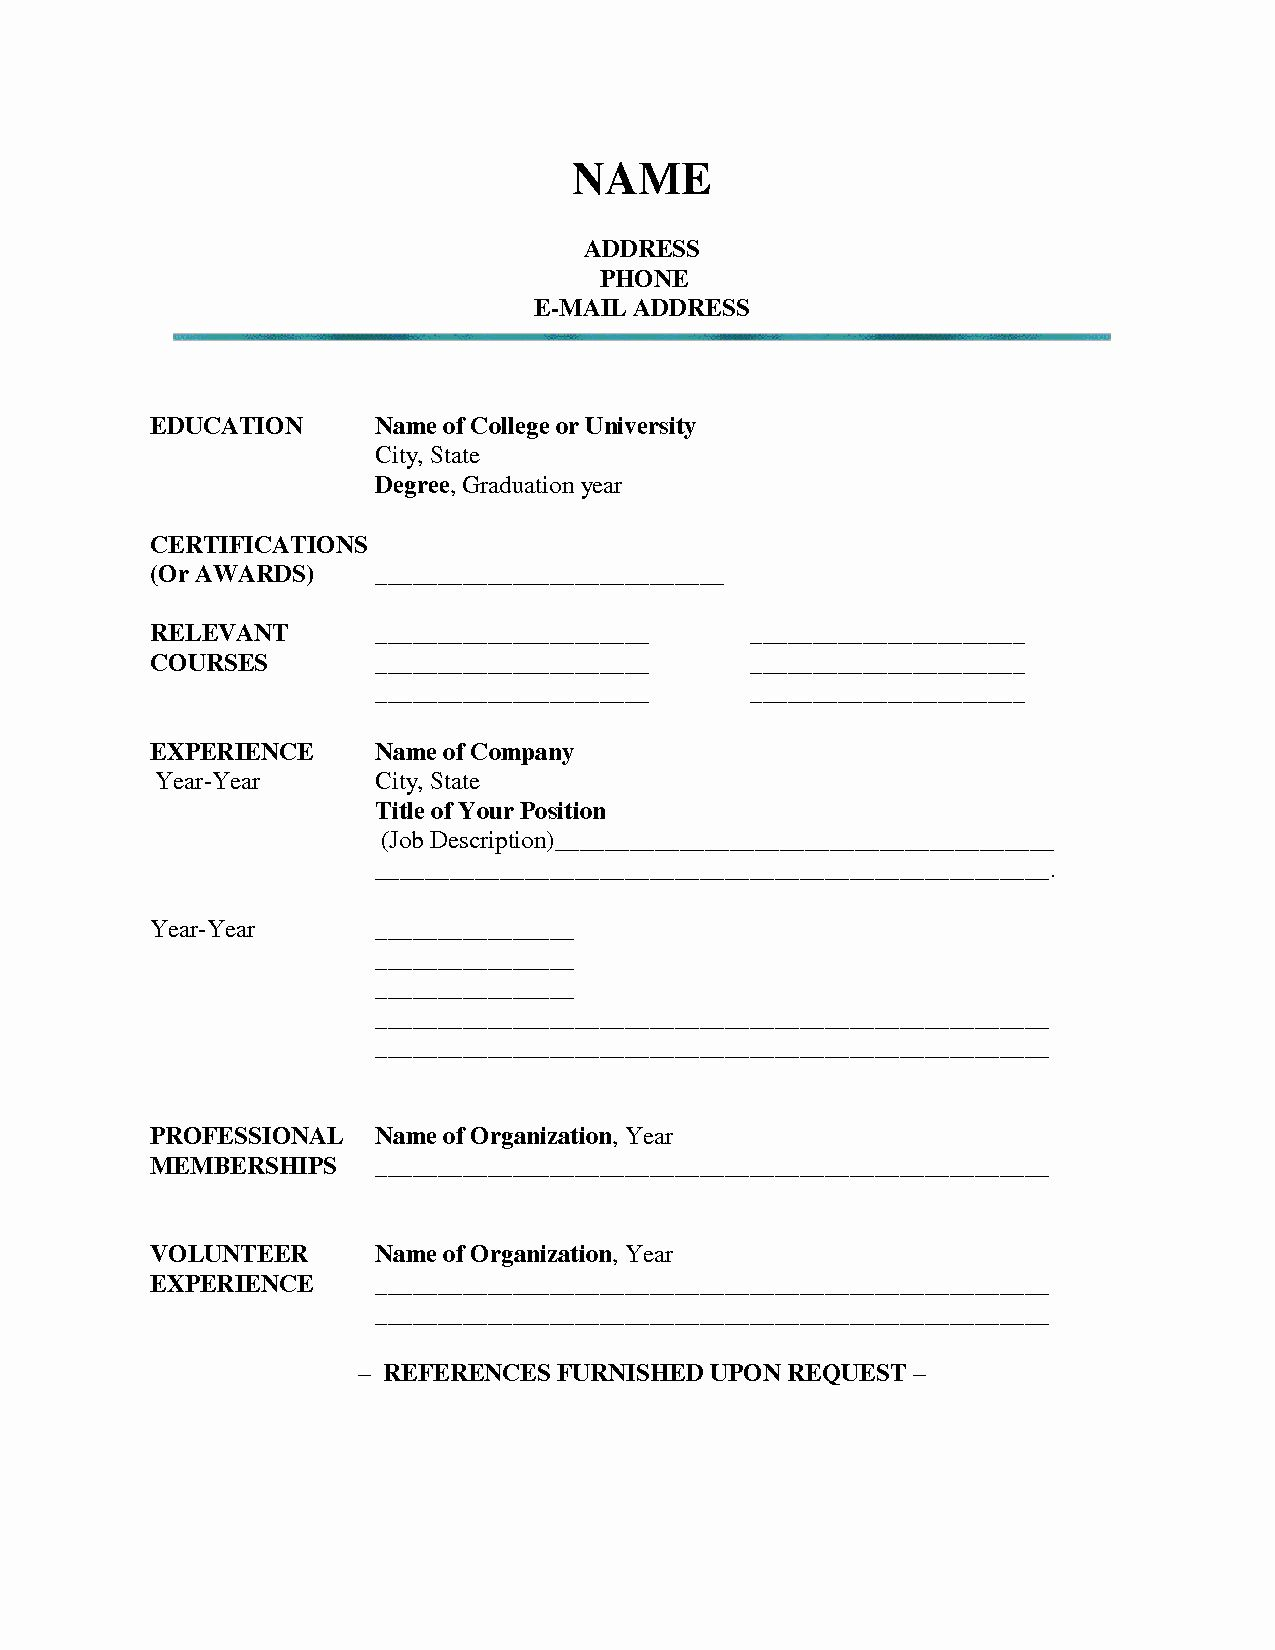 Blank Simple Resume Template Inspirational 7 8 Resume Blank Format Pdf In 2020 Job Resume Template Student Resume Template Free Printable Resume Templates